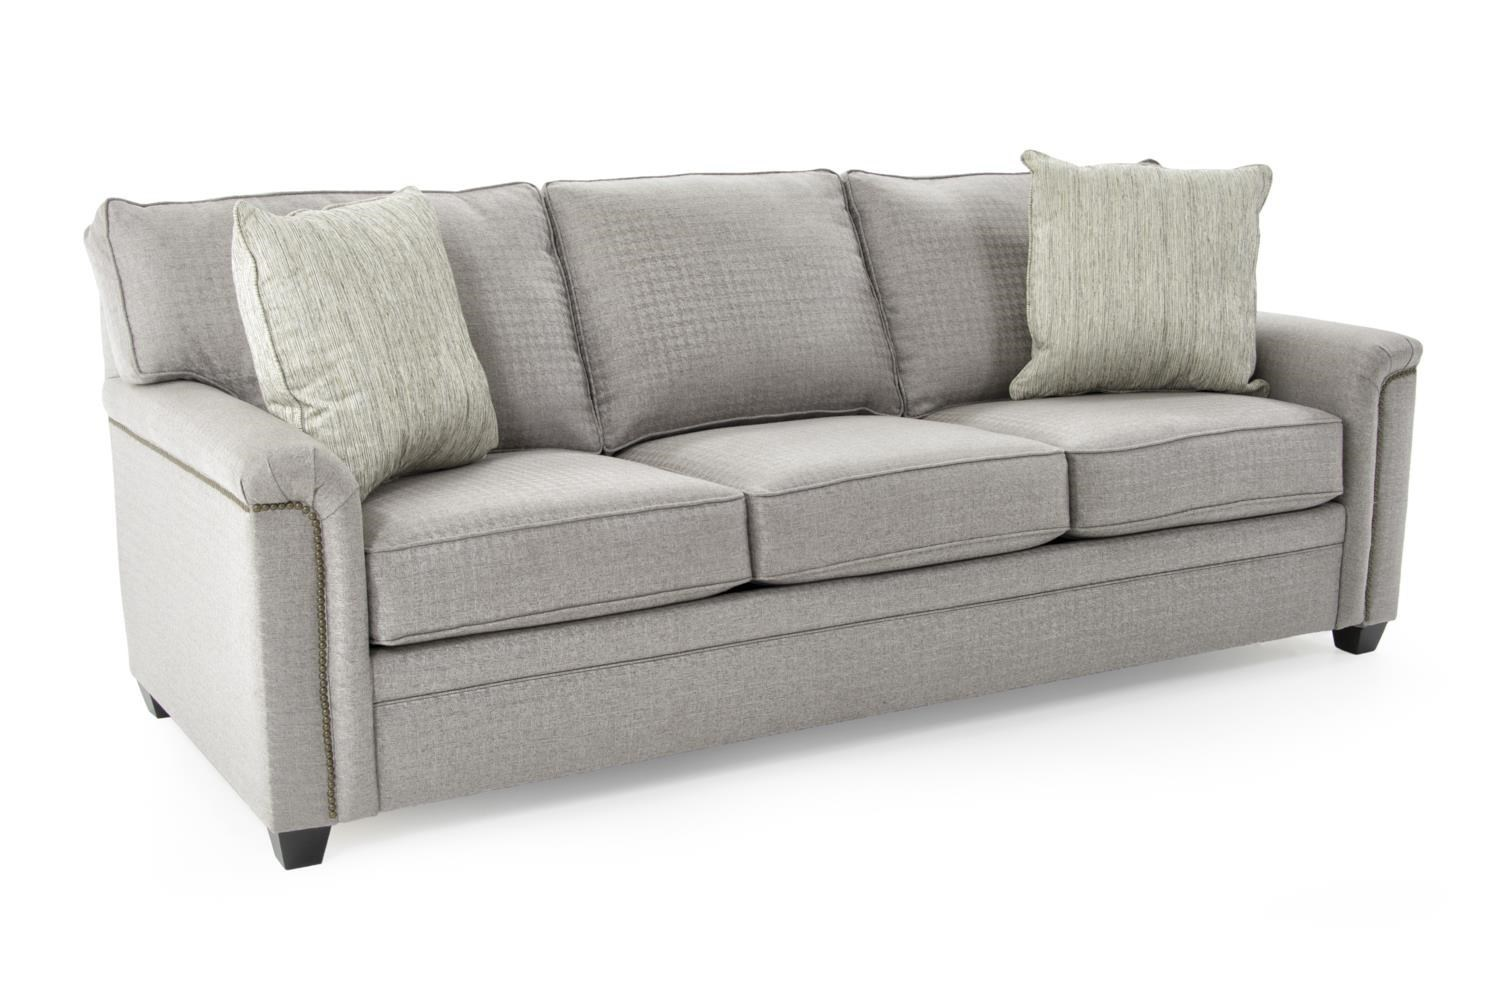 broyhill landon sofa lazy boy jackson scs sleeper furniture thesofa